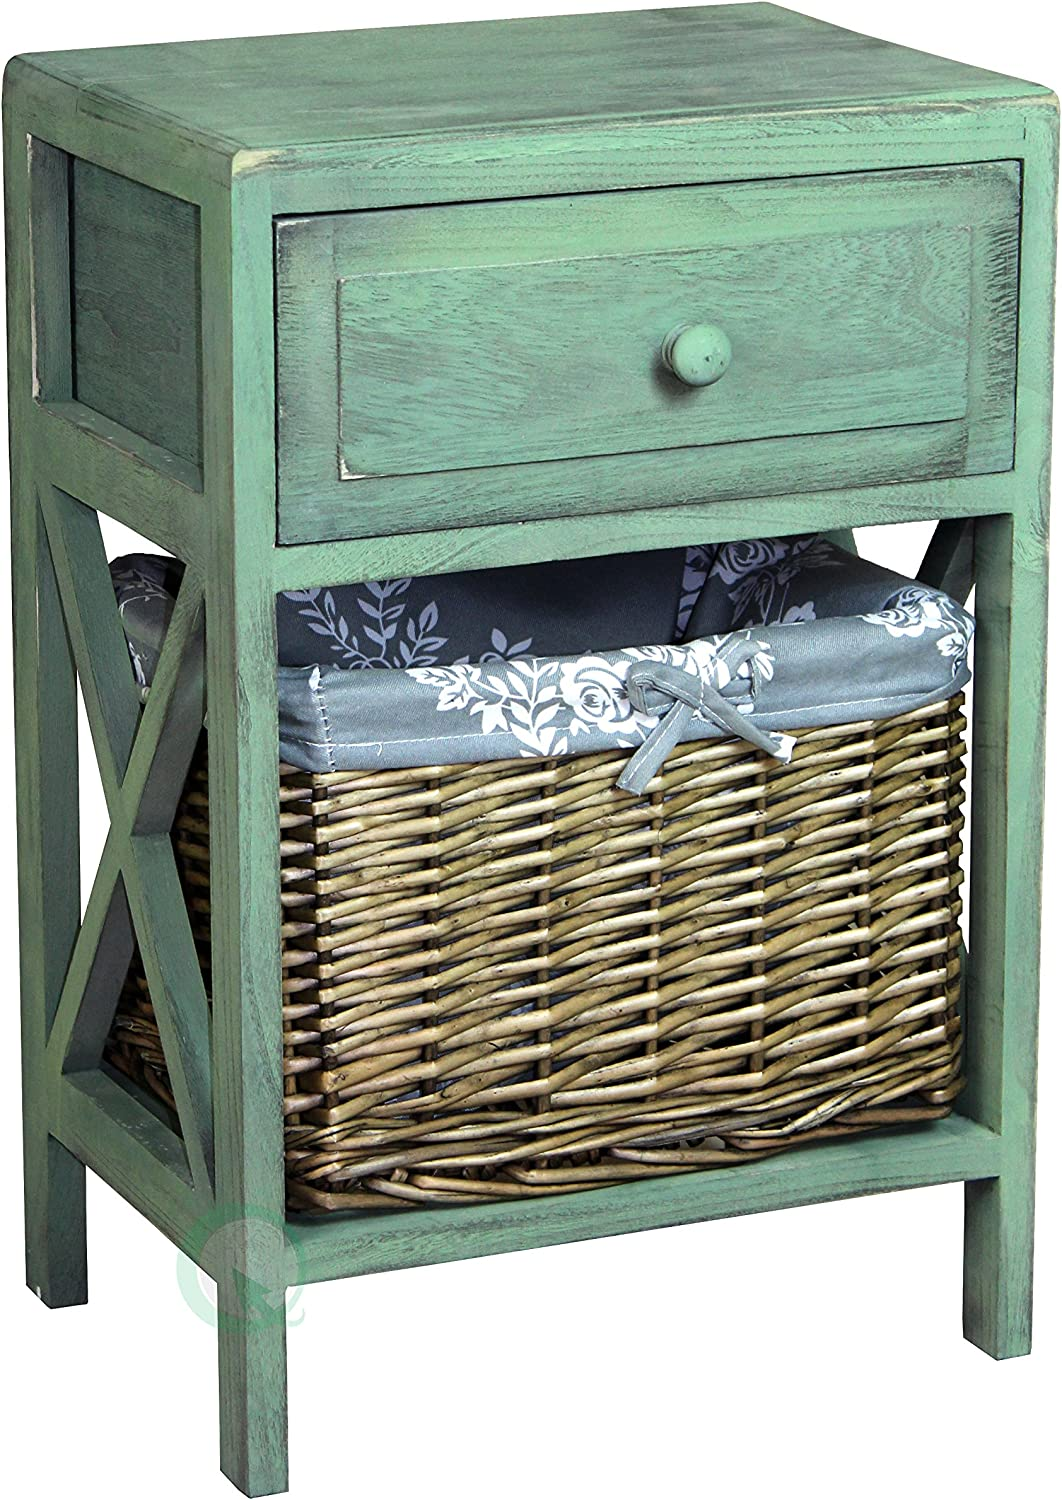 Vintiquewise Distressed Washed Wood Cabinet Chest with Drawer and Basket Bin